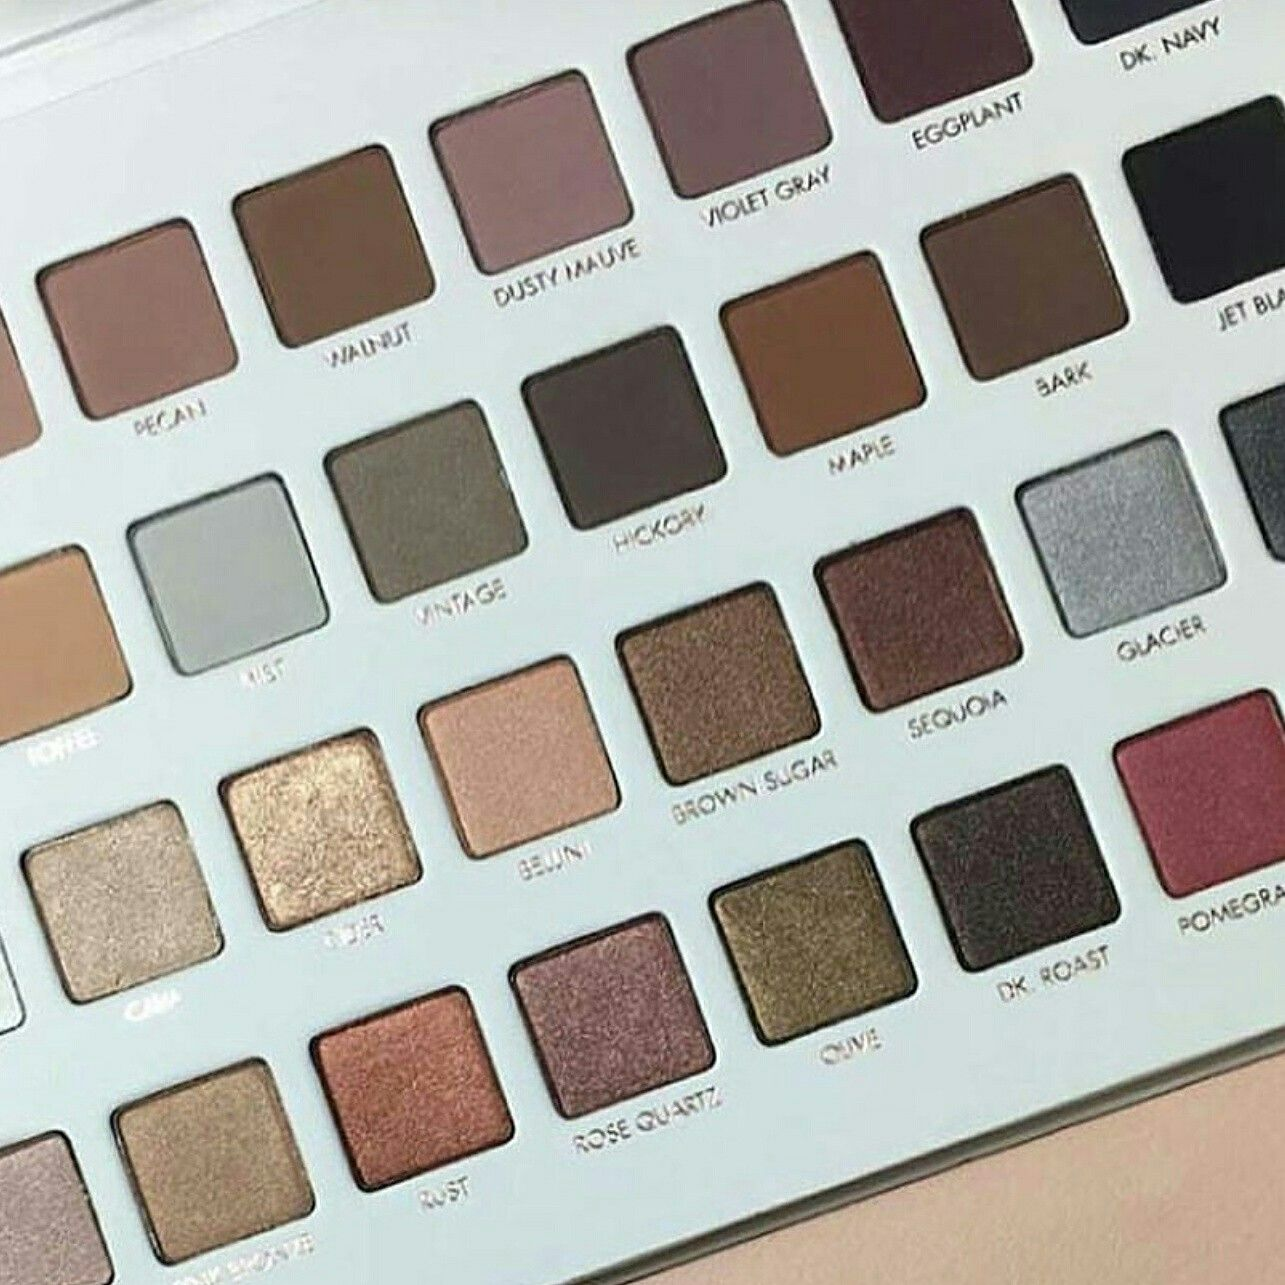 Buy Hair3 and Beauty standout products from lorac picture trends